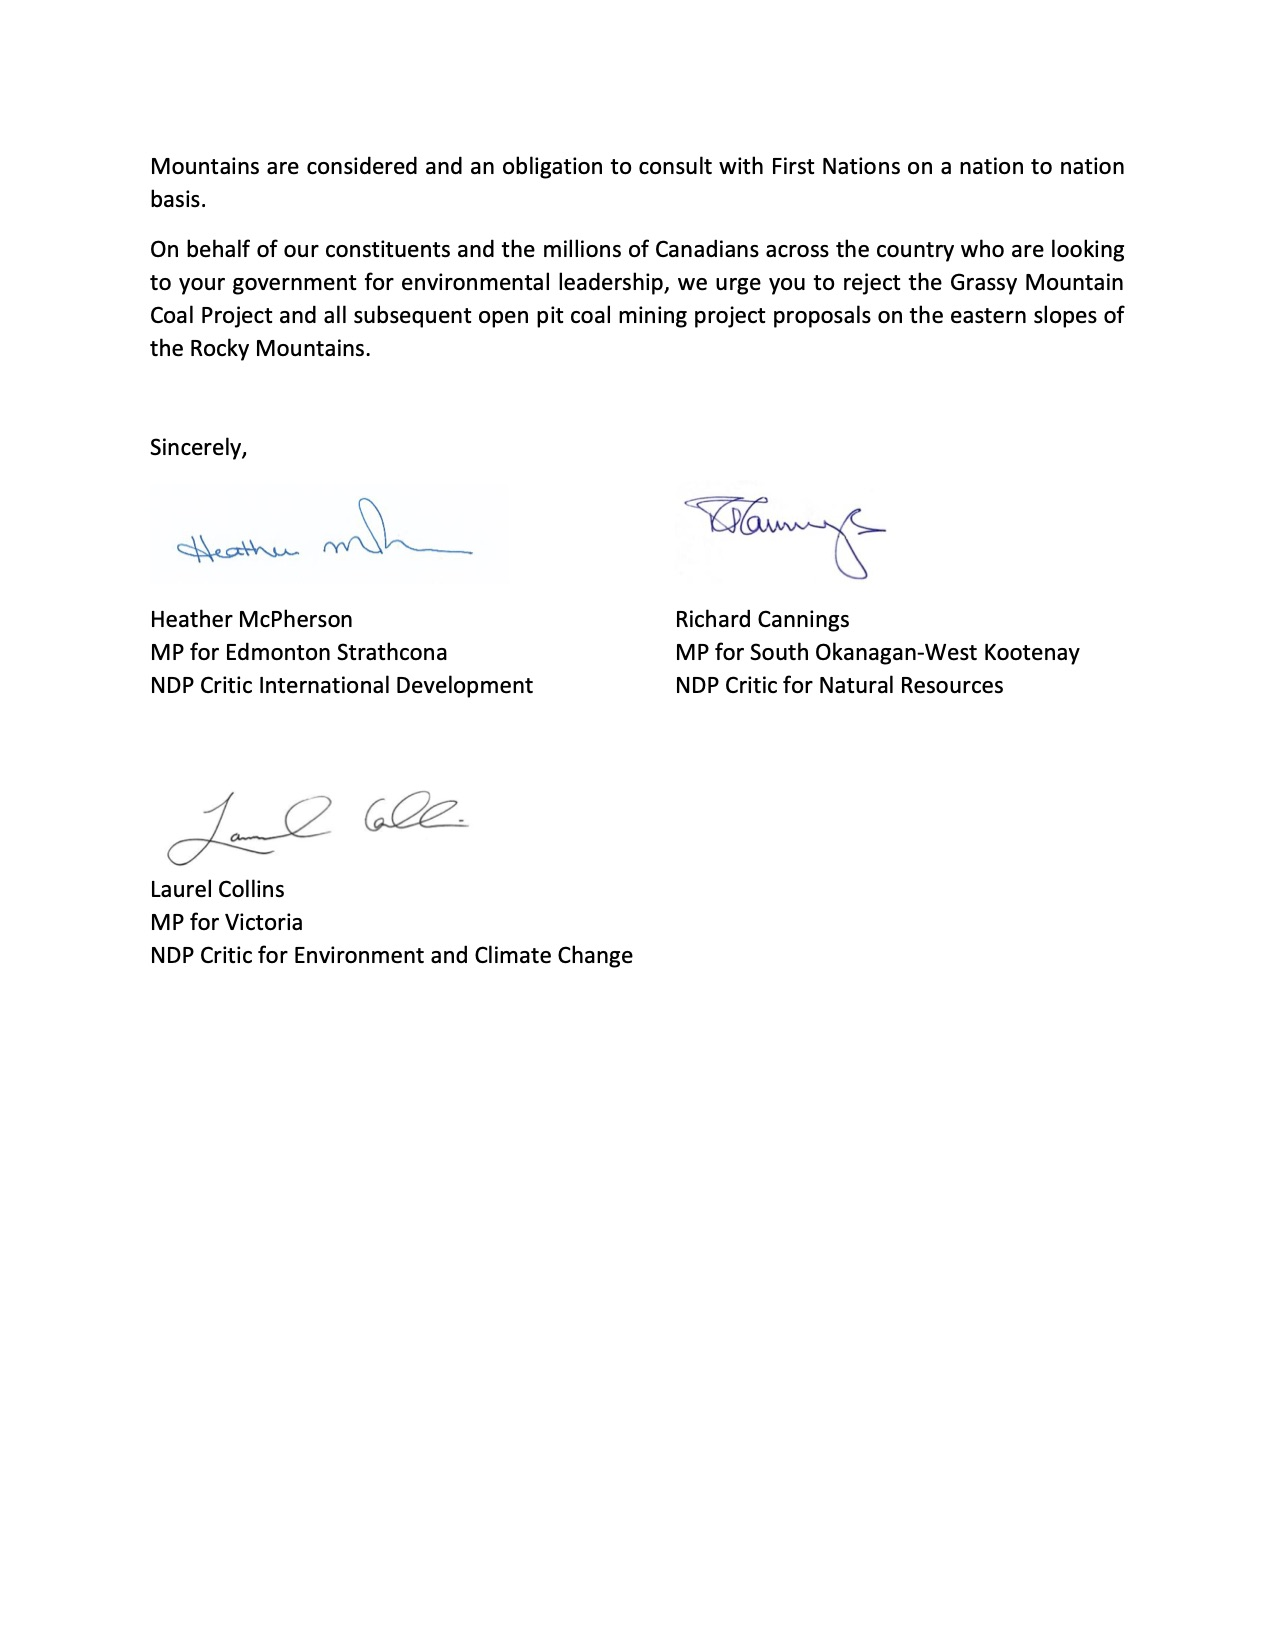 Letter to Minister Wilkinson, Page 3